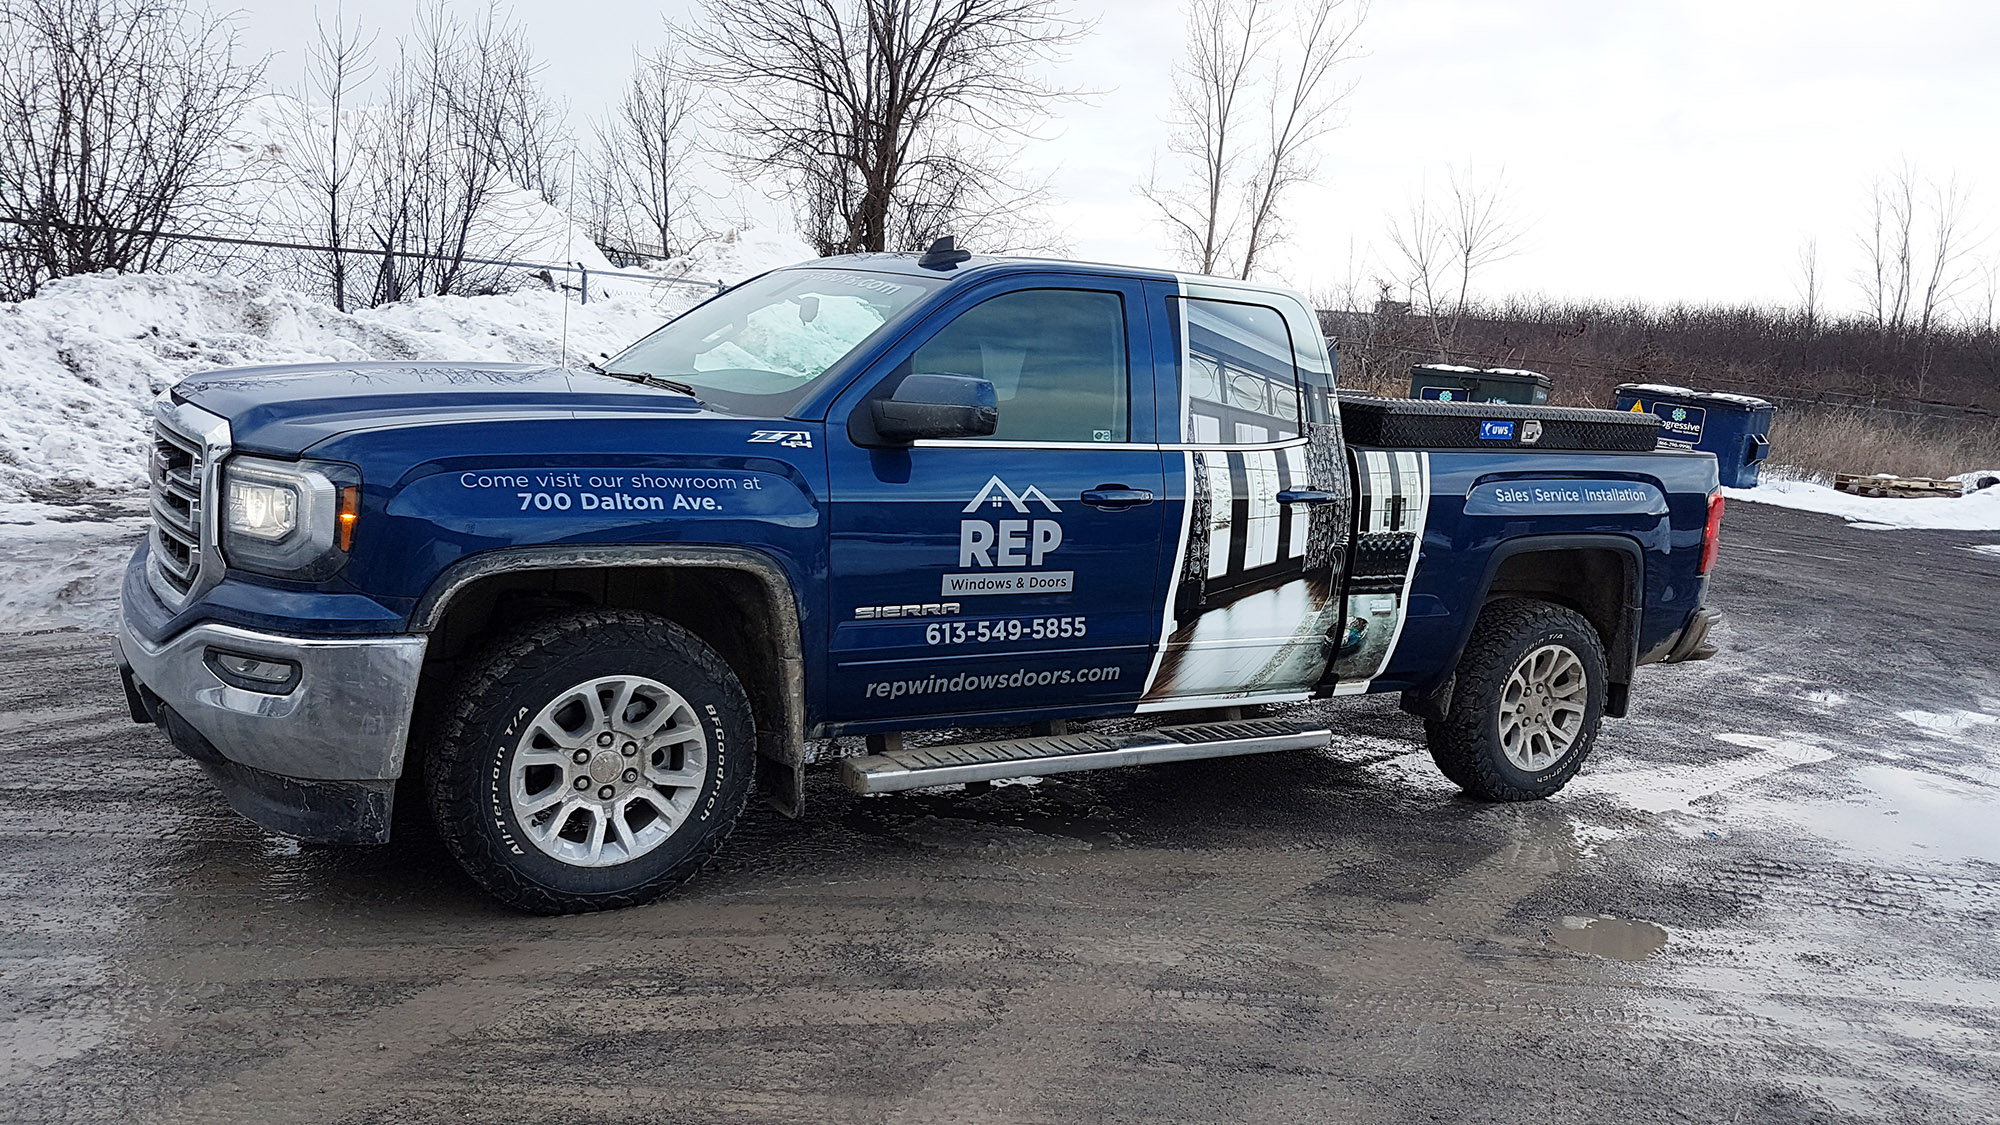 REP Windows & Doors GMC Sierra